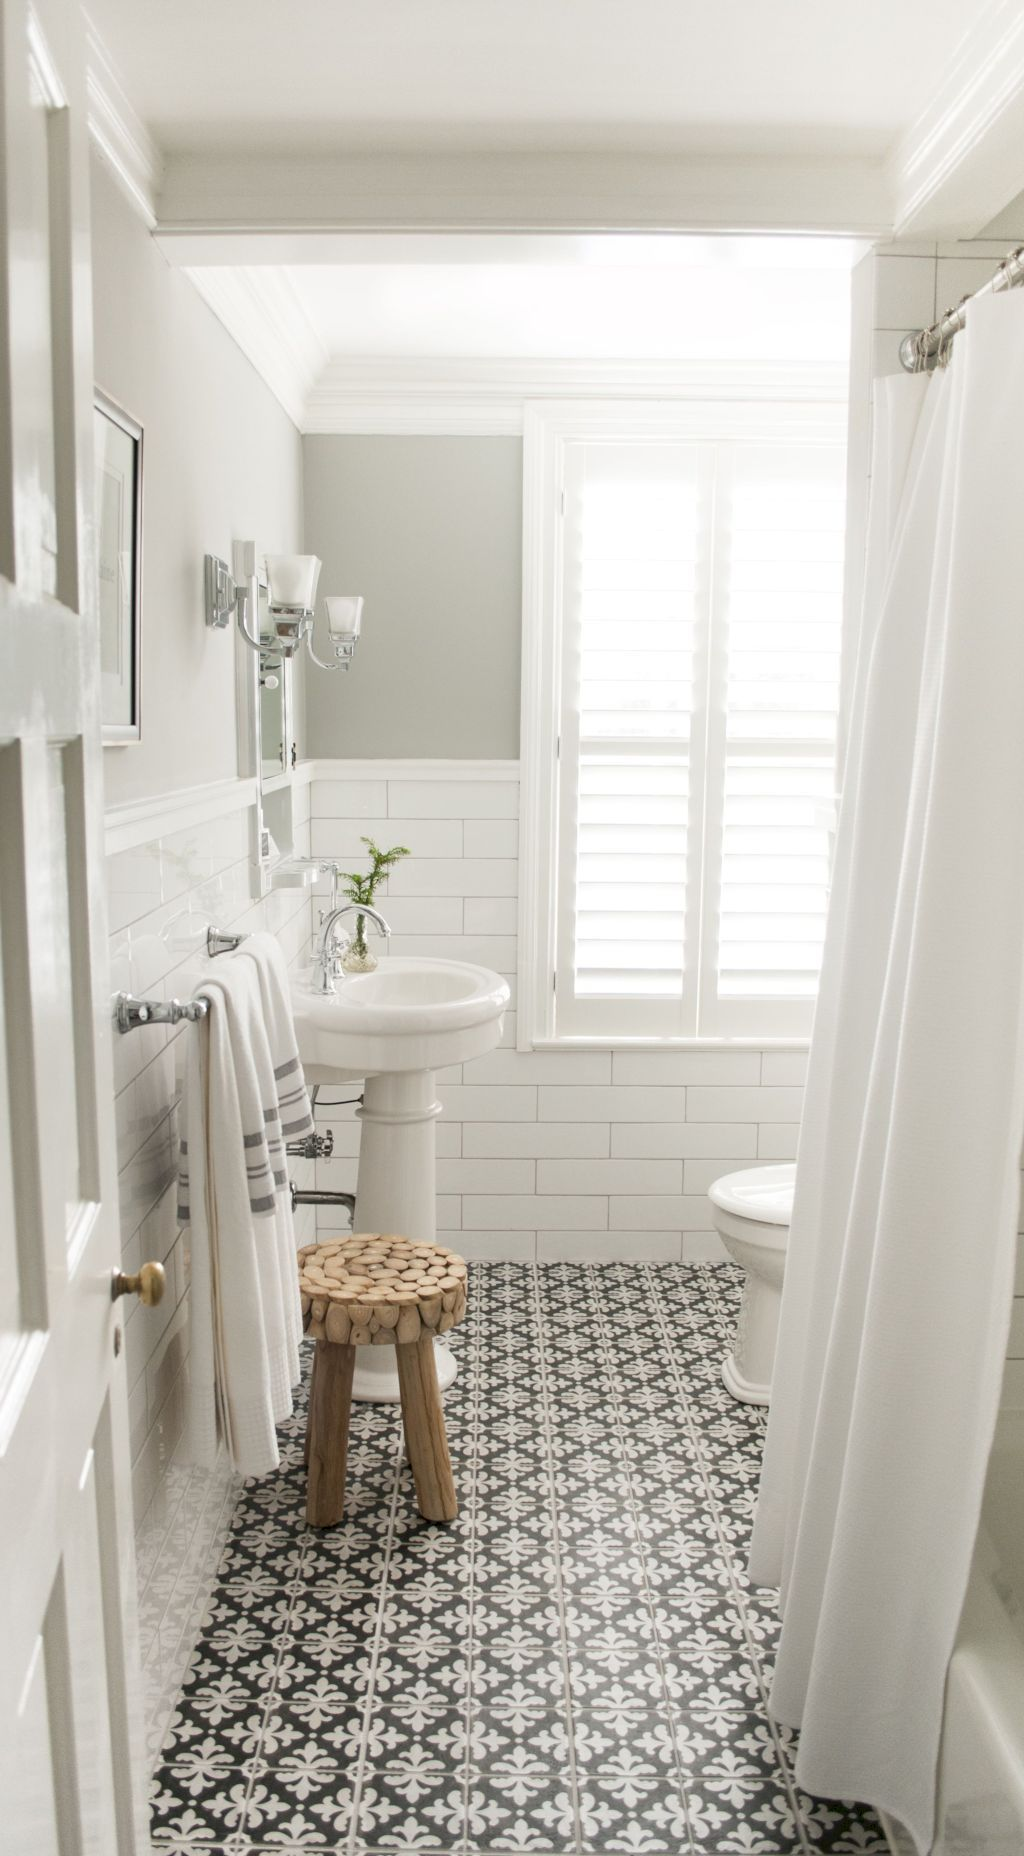 60 stunning farmhouse bathroom tiles ideas